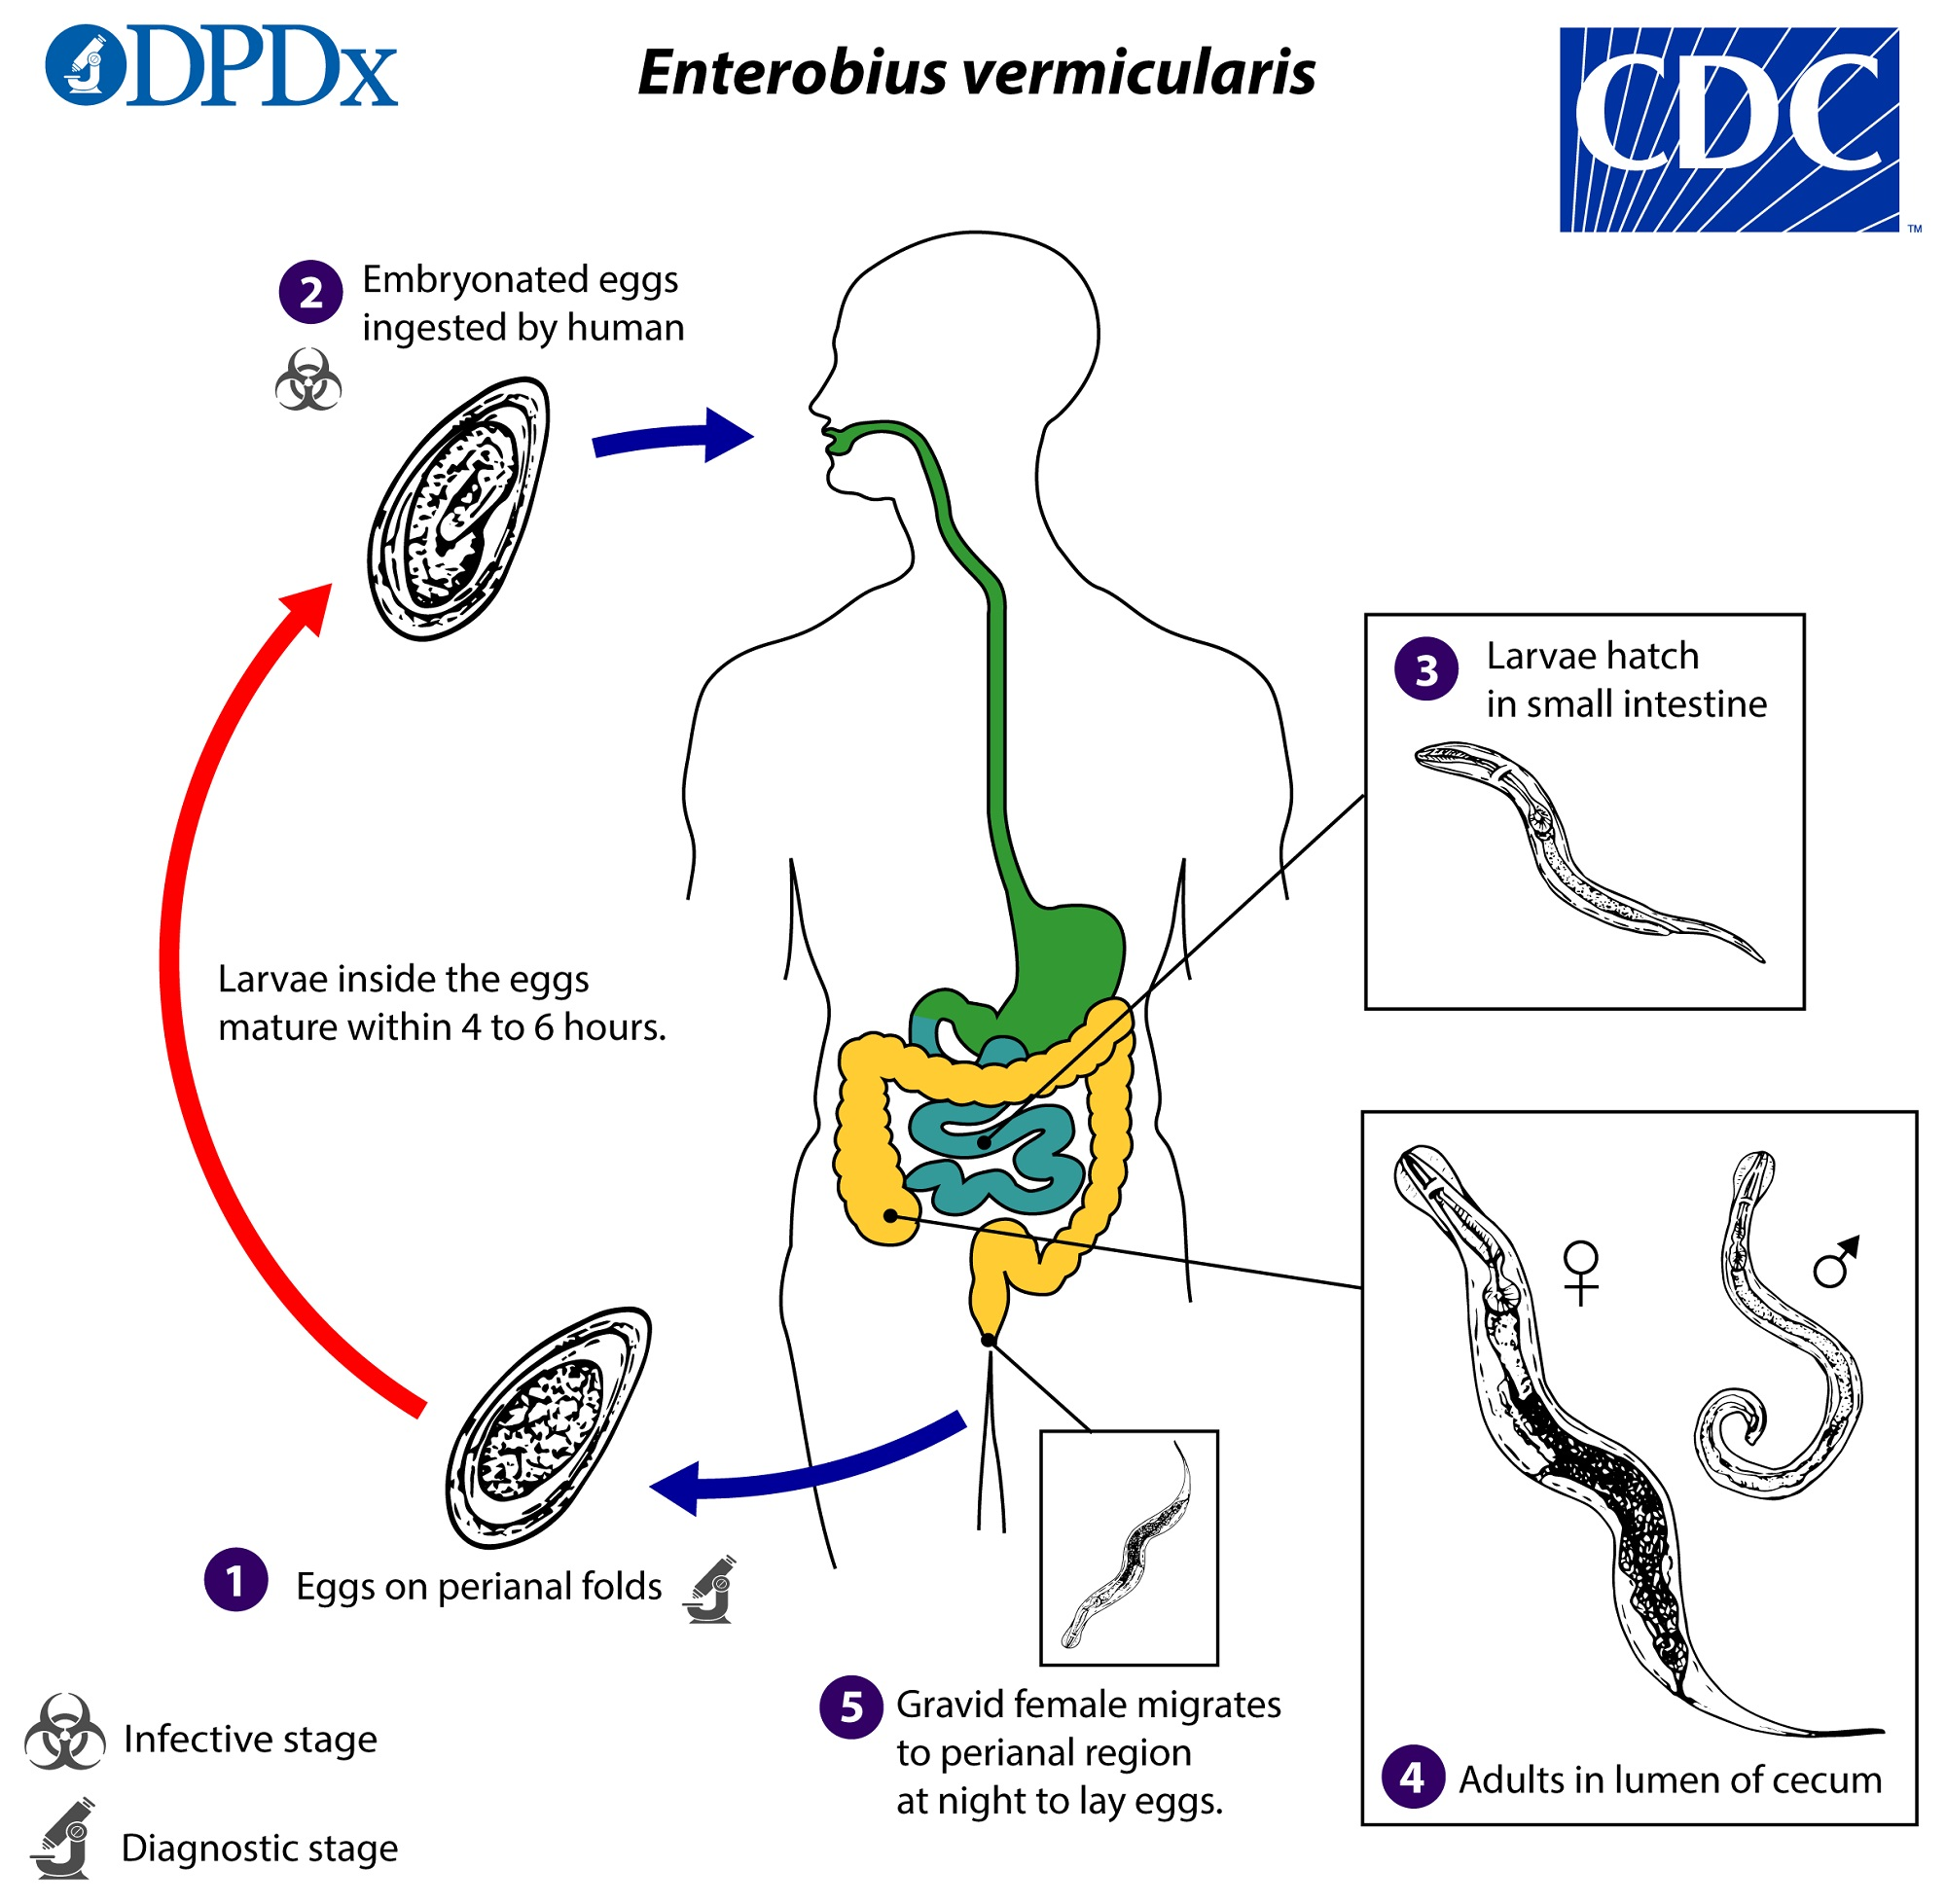 enterobius vermicularis diagram